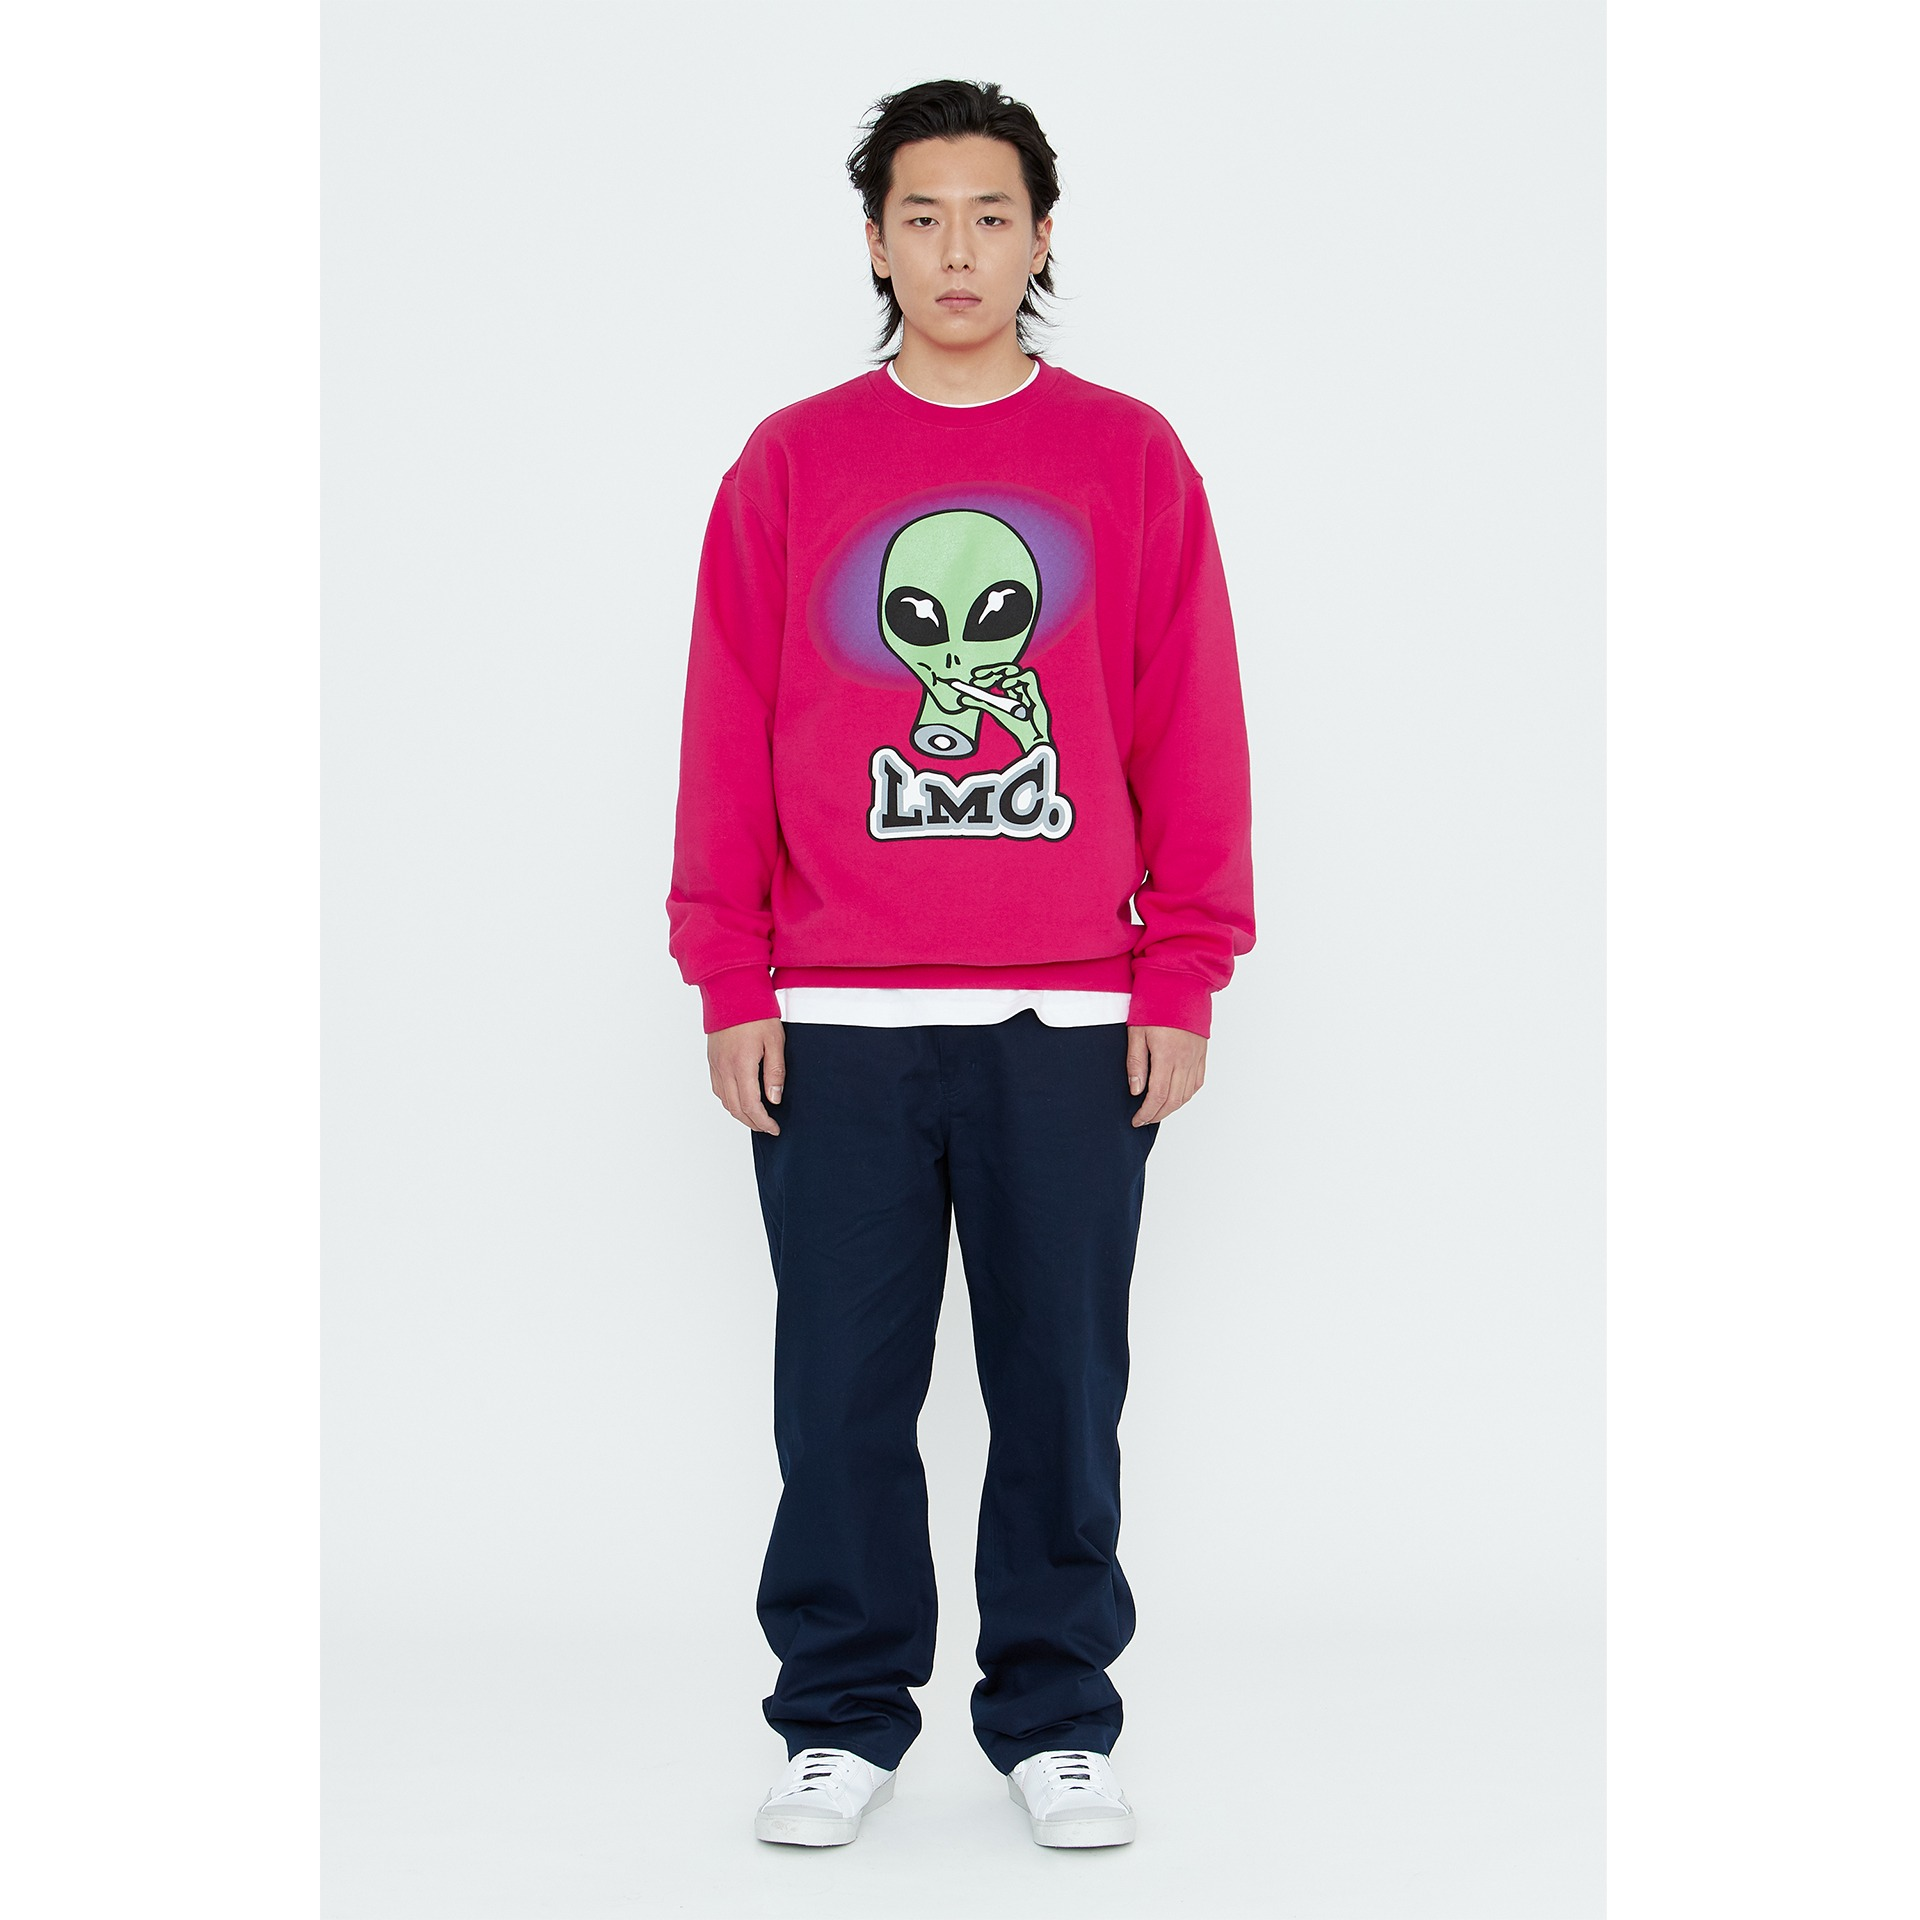 LMC SMOKING ALIEN SWEATSHIRT pink